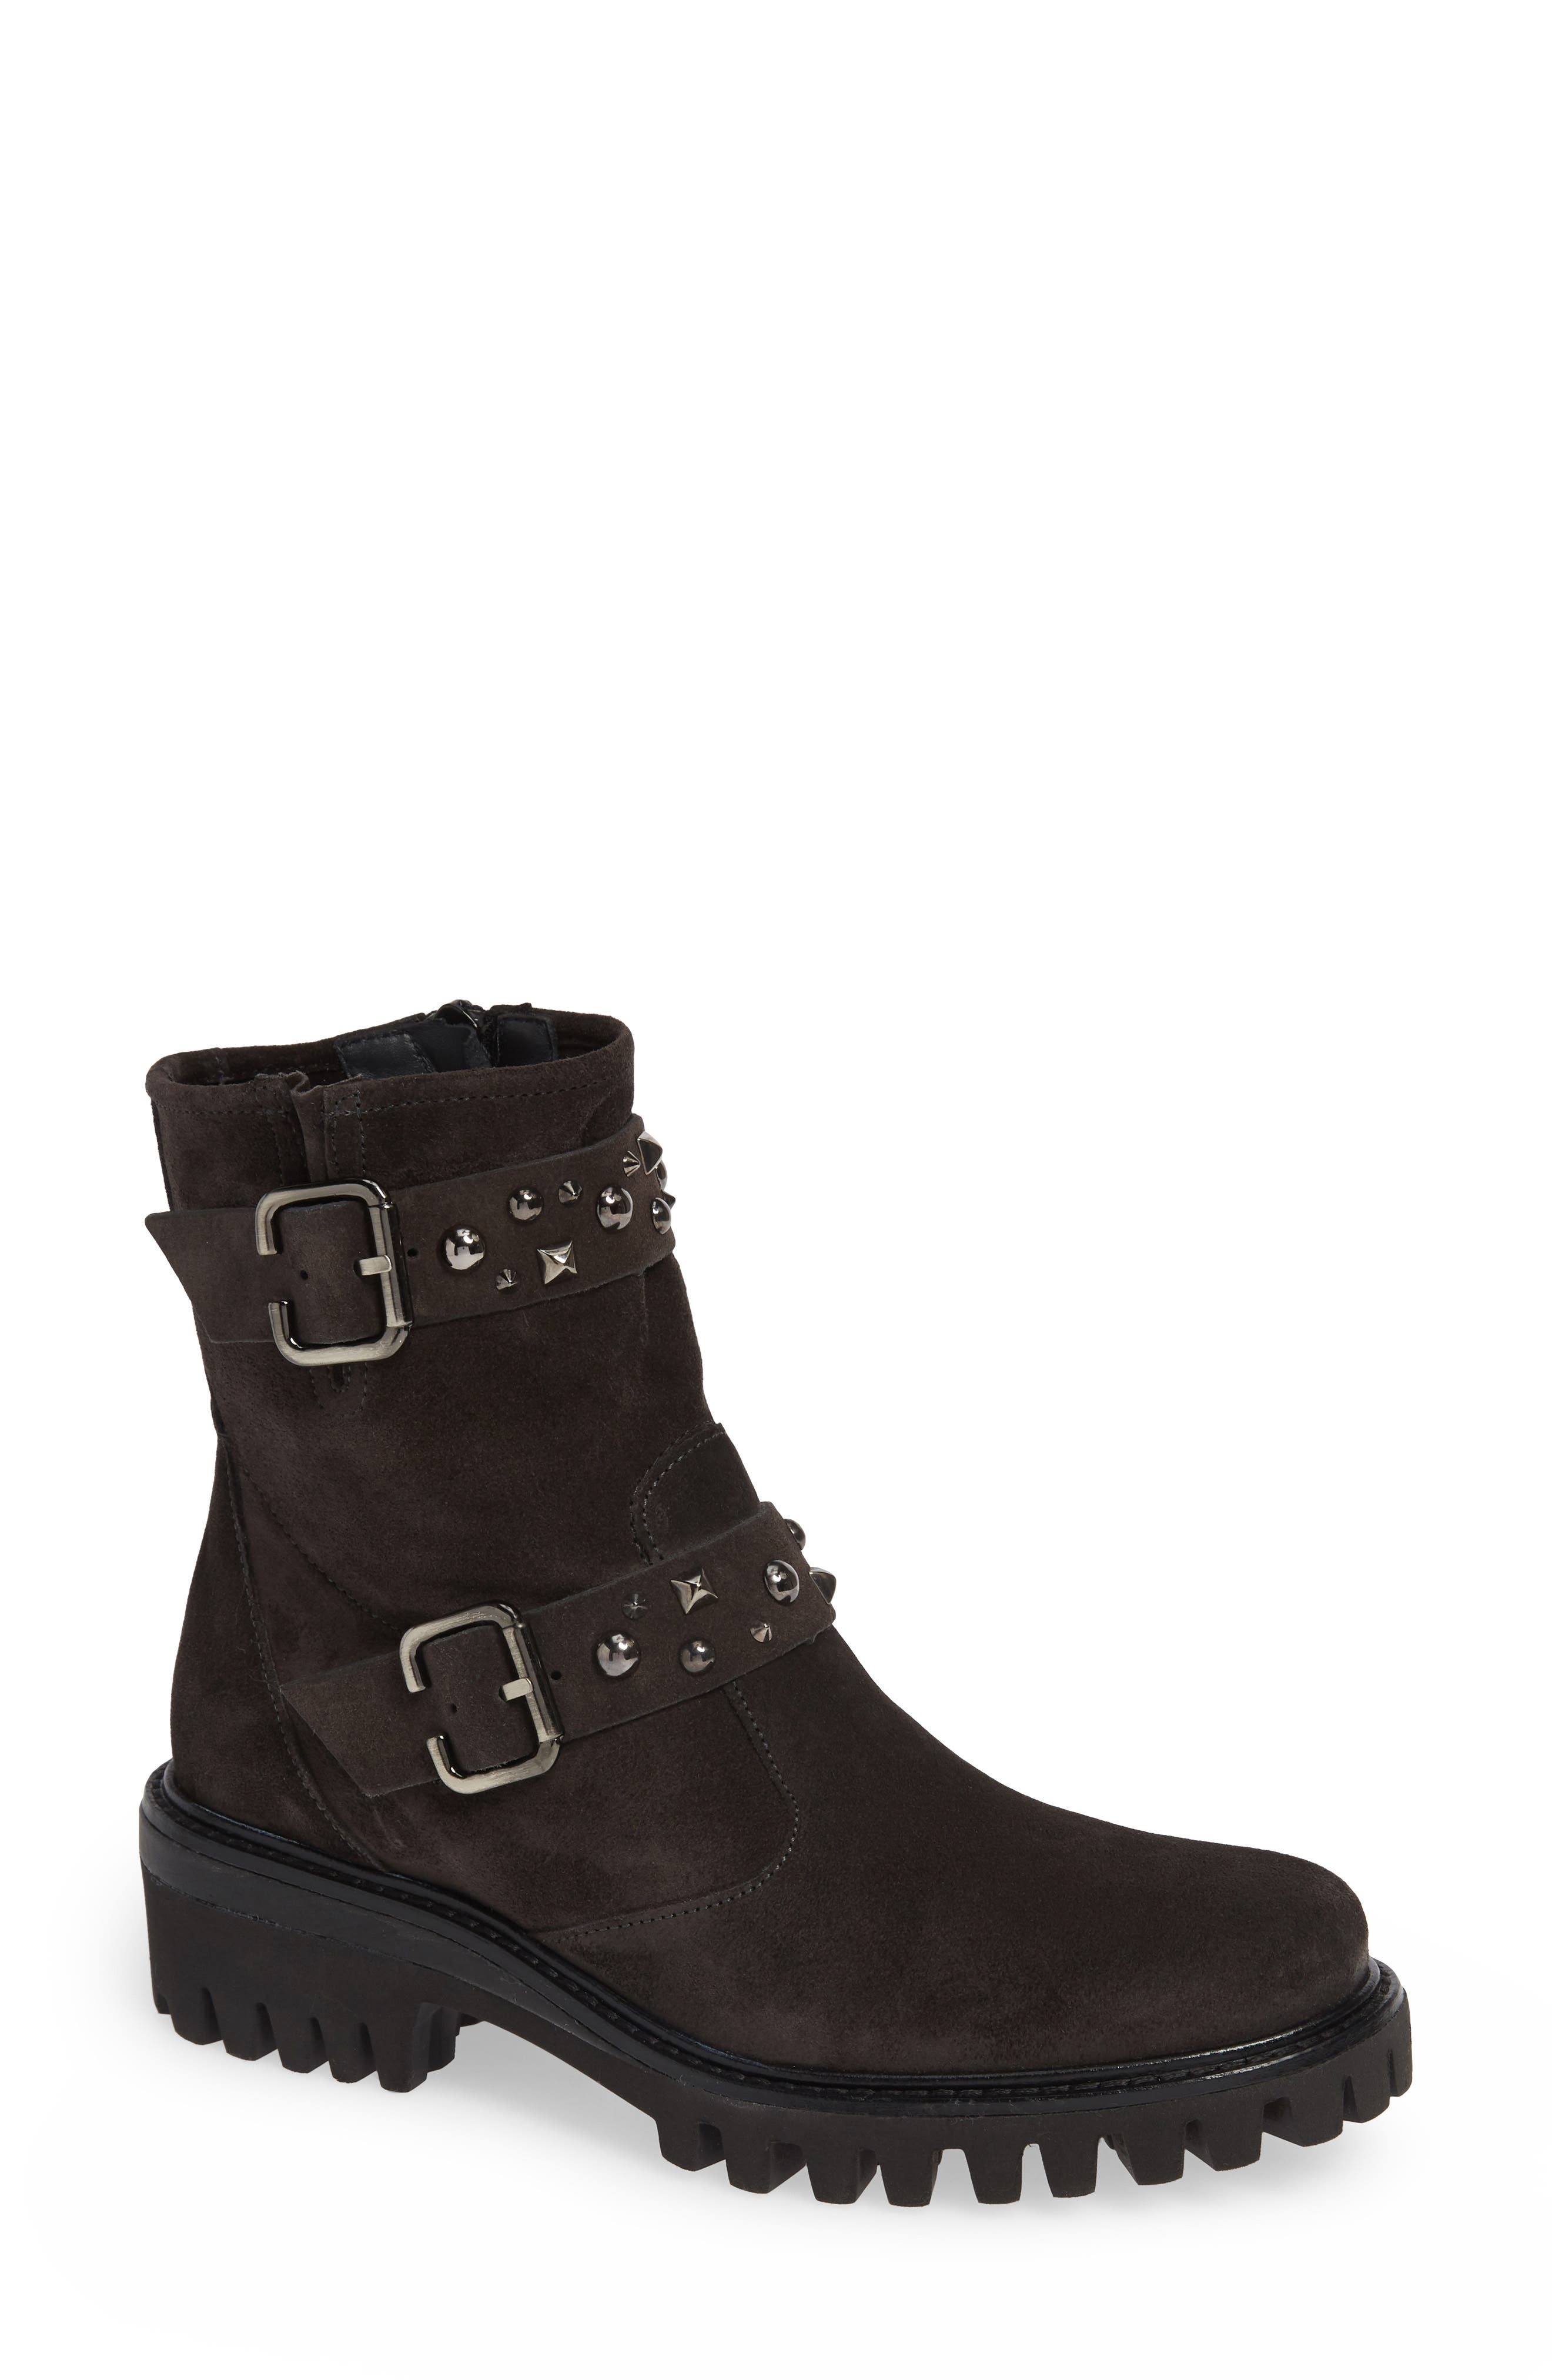 PAUL GREEN Veronia Studded Buckle Boot in Anthrazite Suede